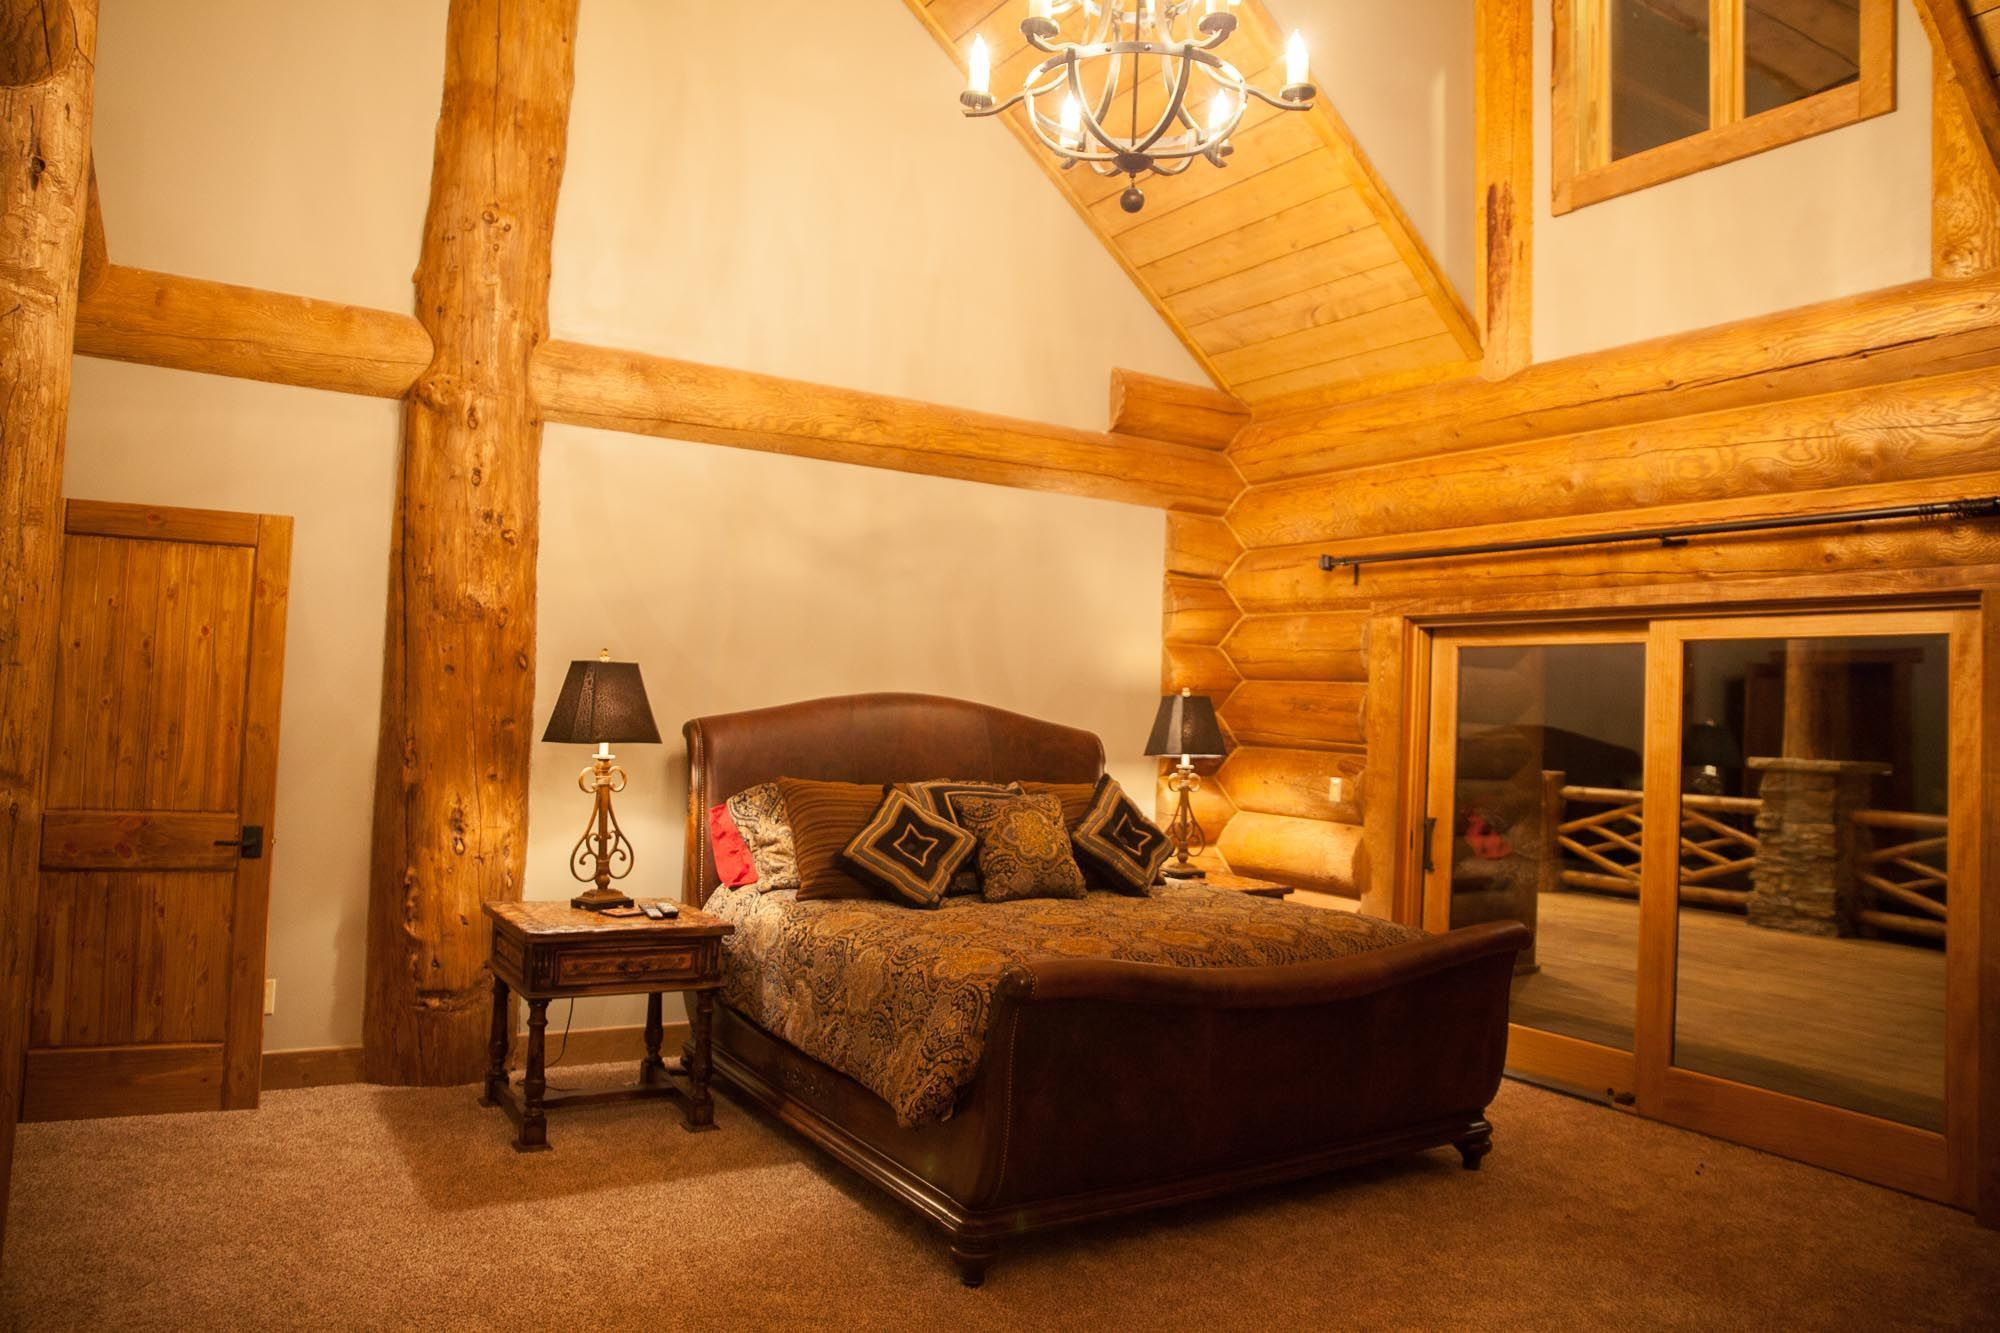 angel table states hot private cabins rooms tub united in country tennessee apple feel fire for farm place rent pool sevierville